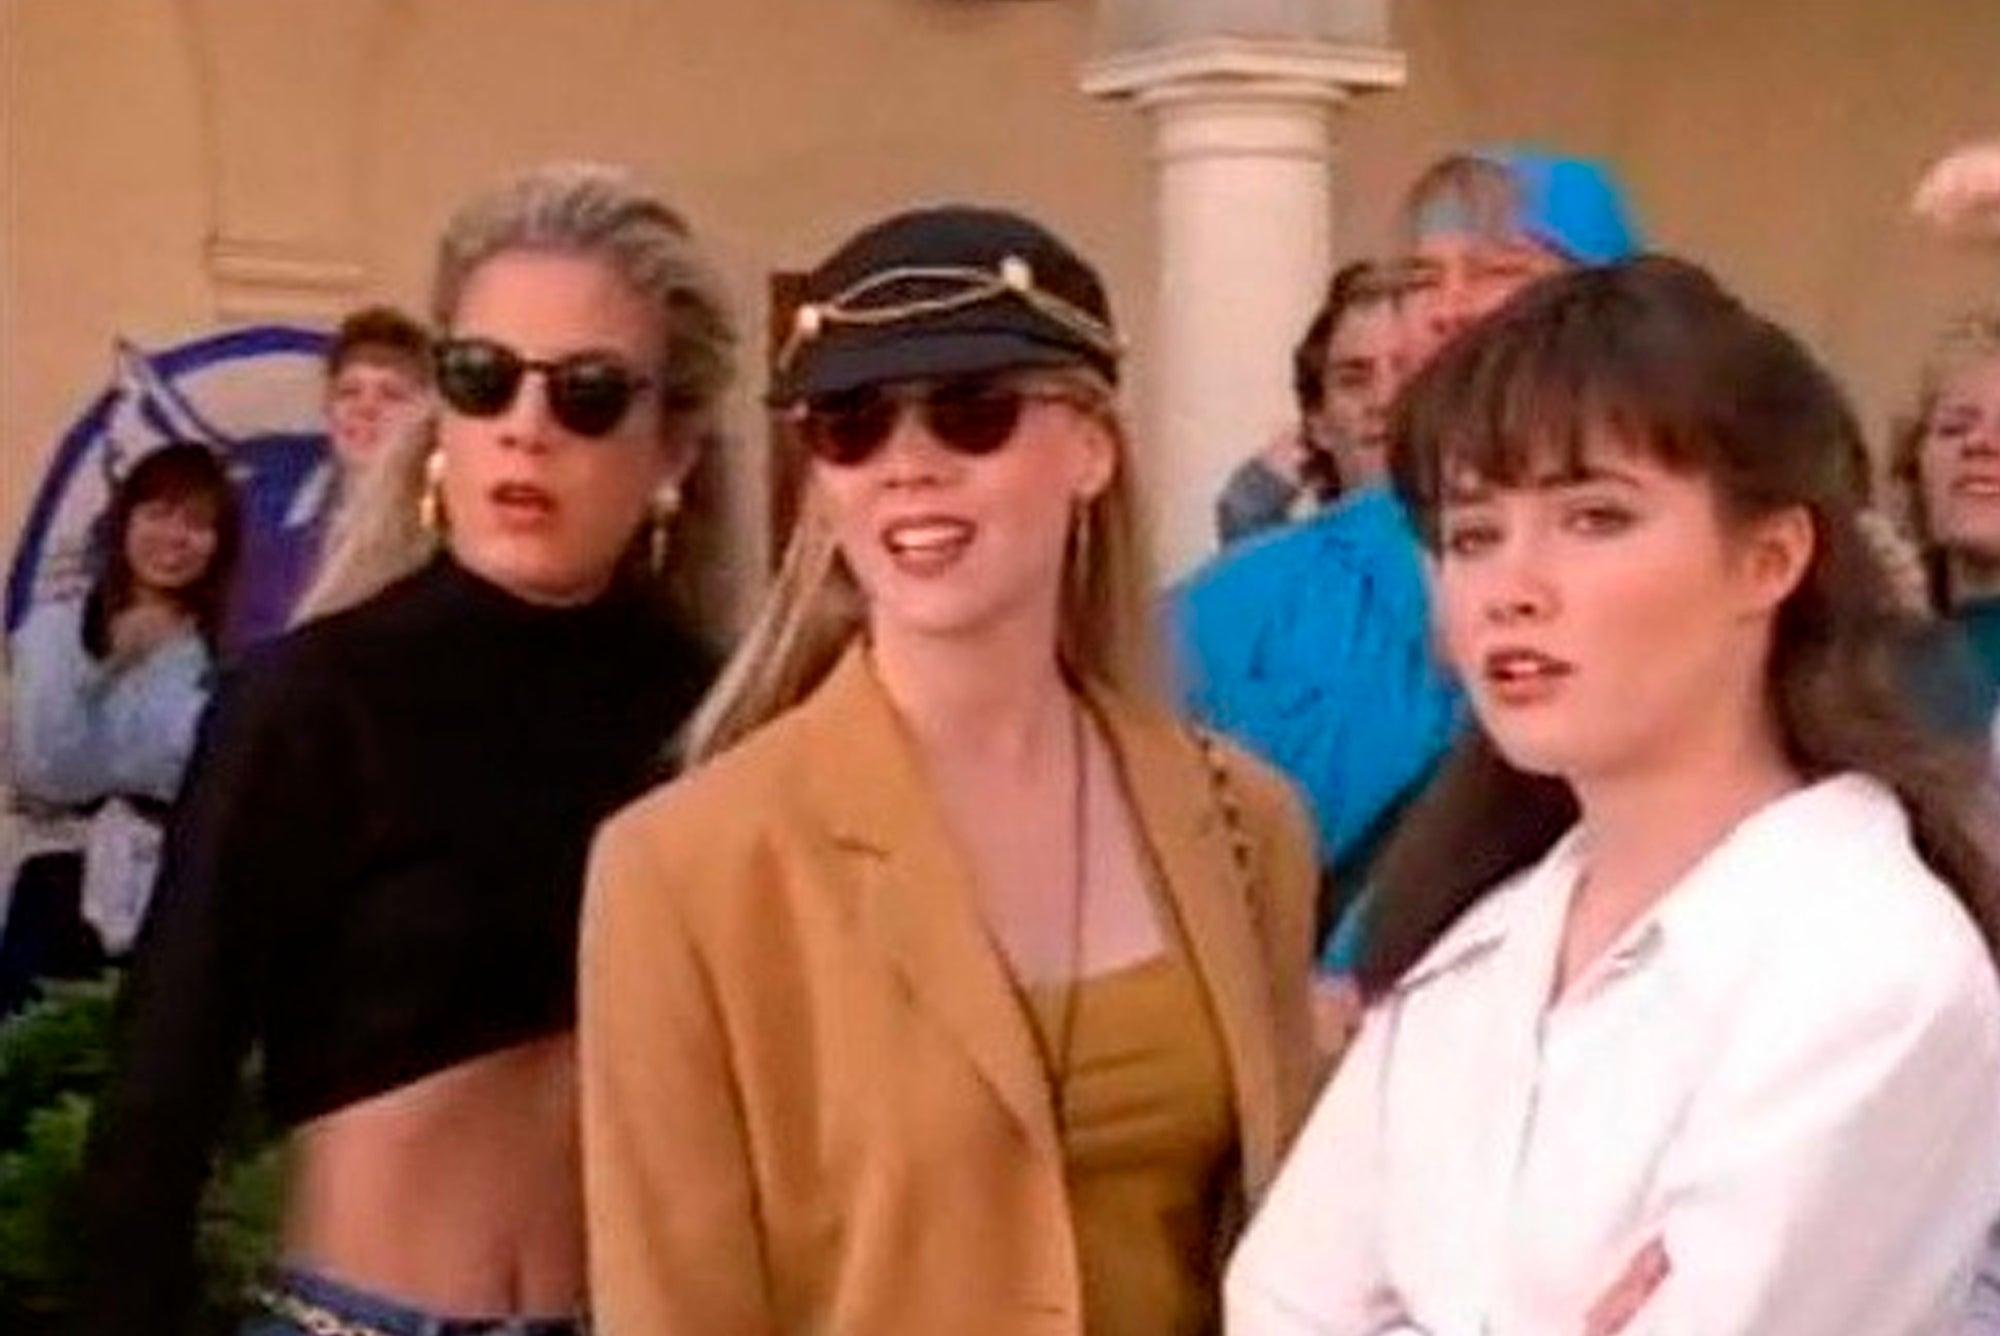 cast of Beverly Hills 90210 wearing sunglasses